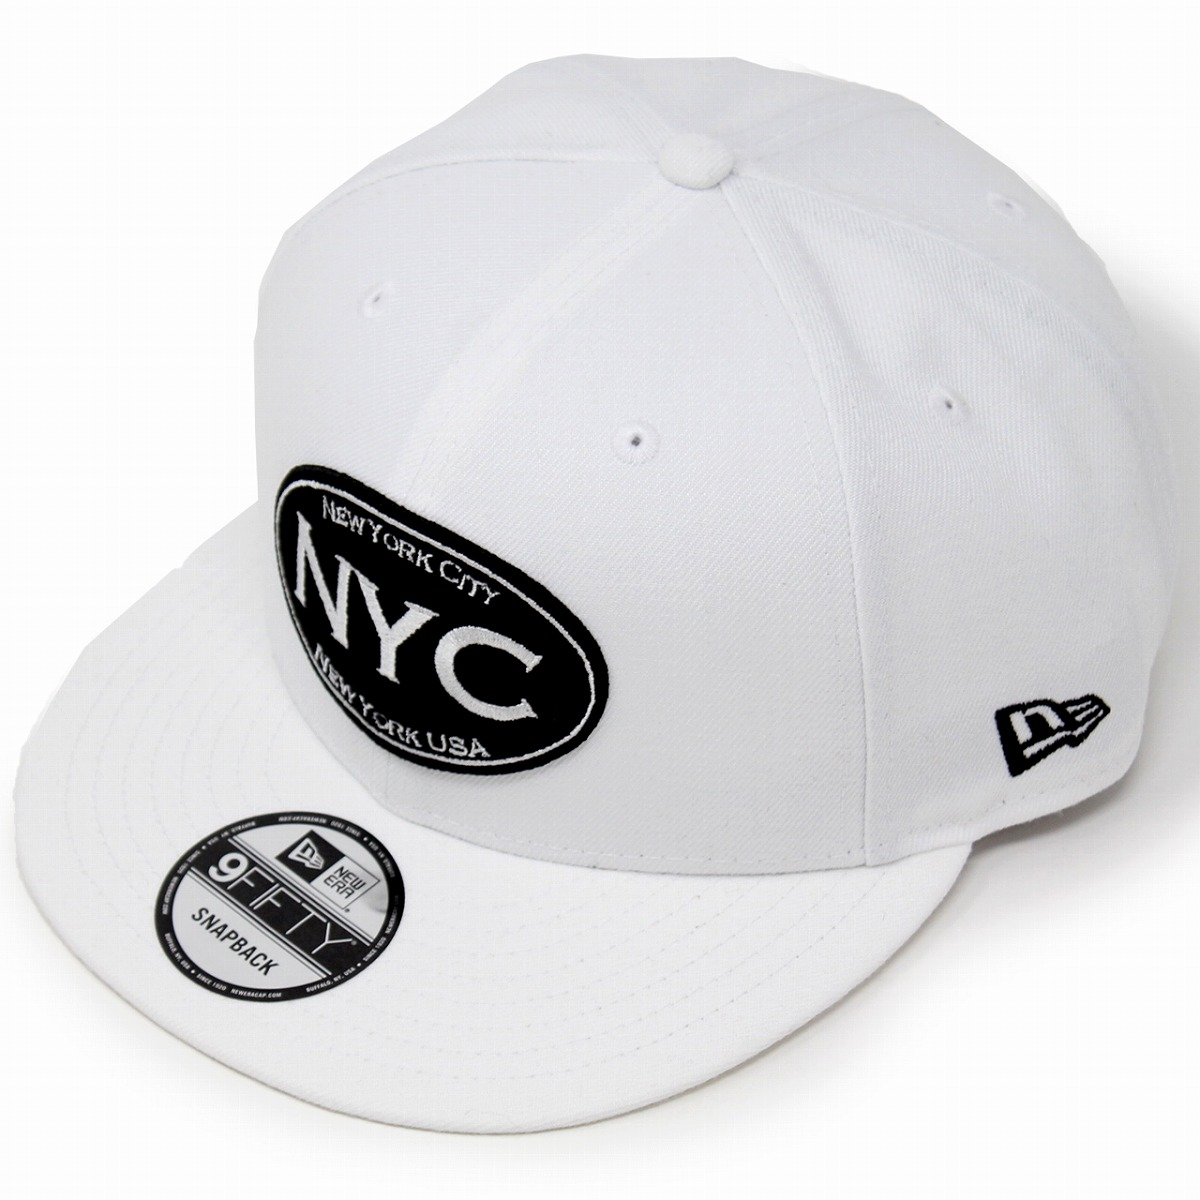 New gills cap white NEWERA NYC 9FIFTY men hat logo cap Lady s Oval logo cap  Basic ... 88fa65bffe